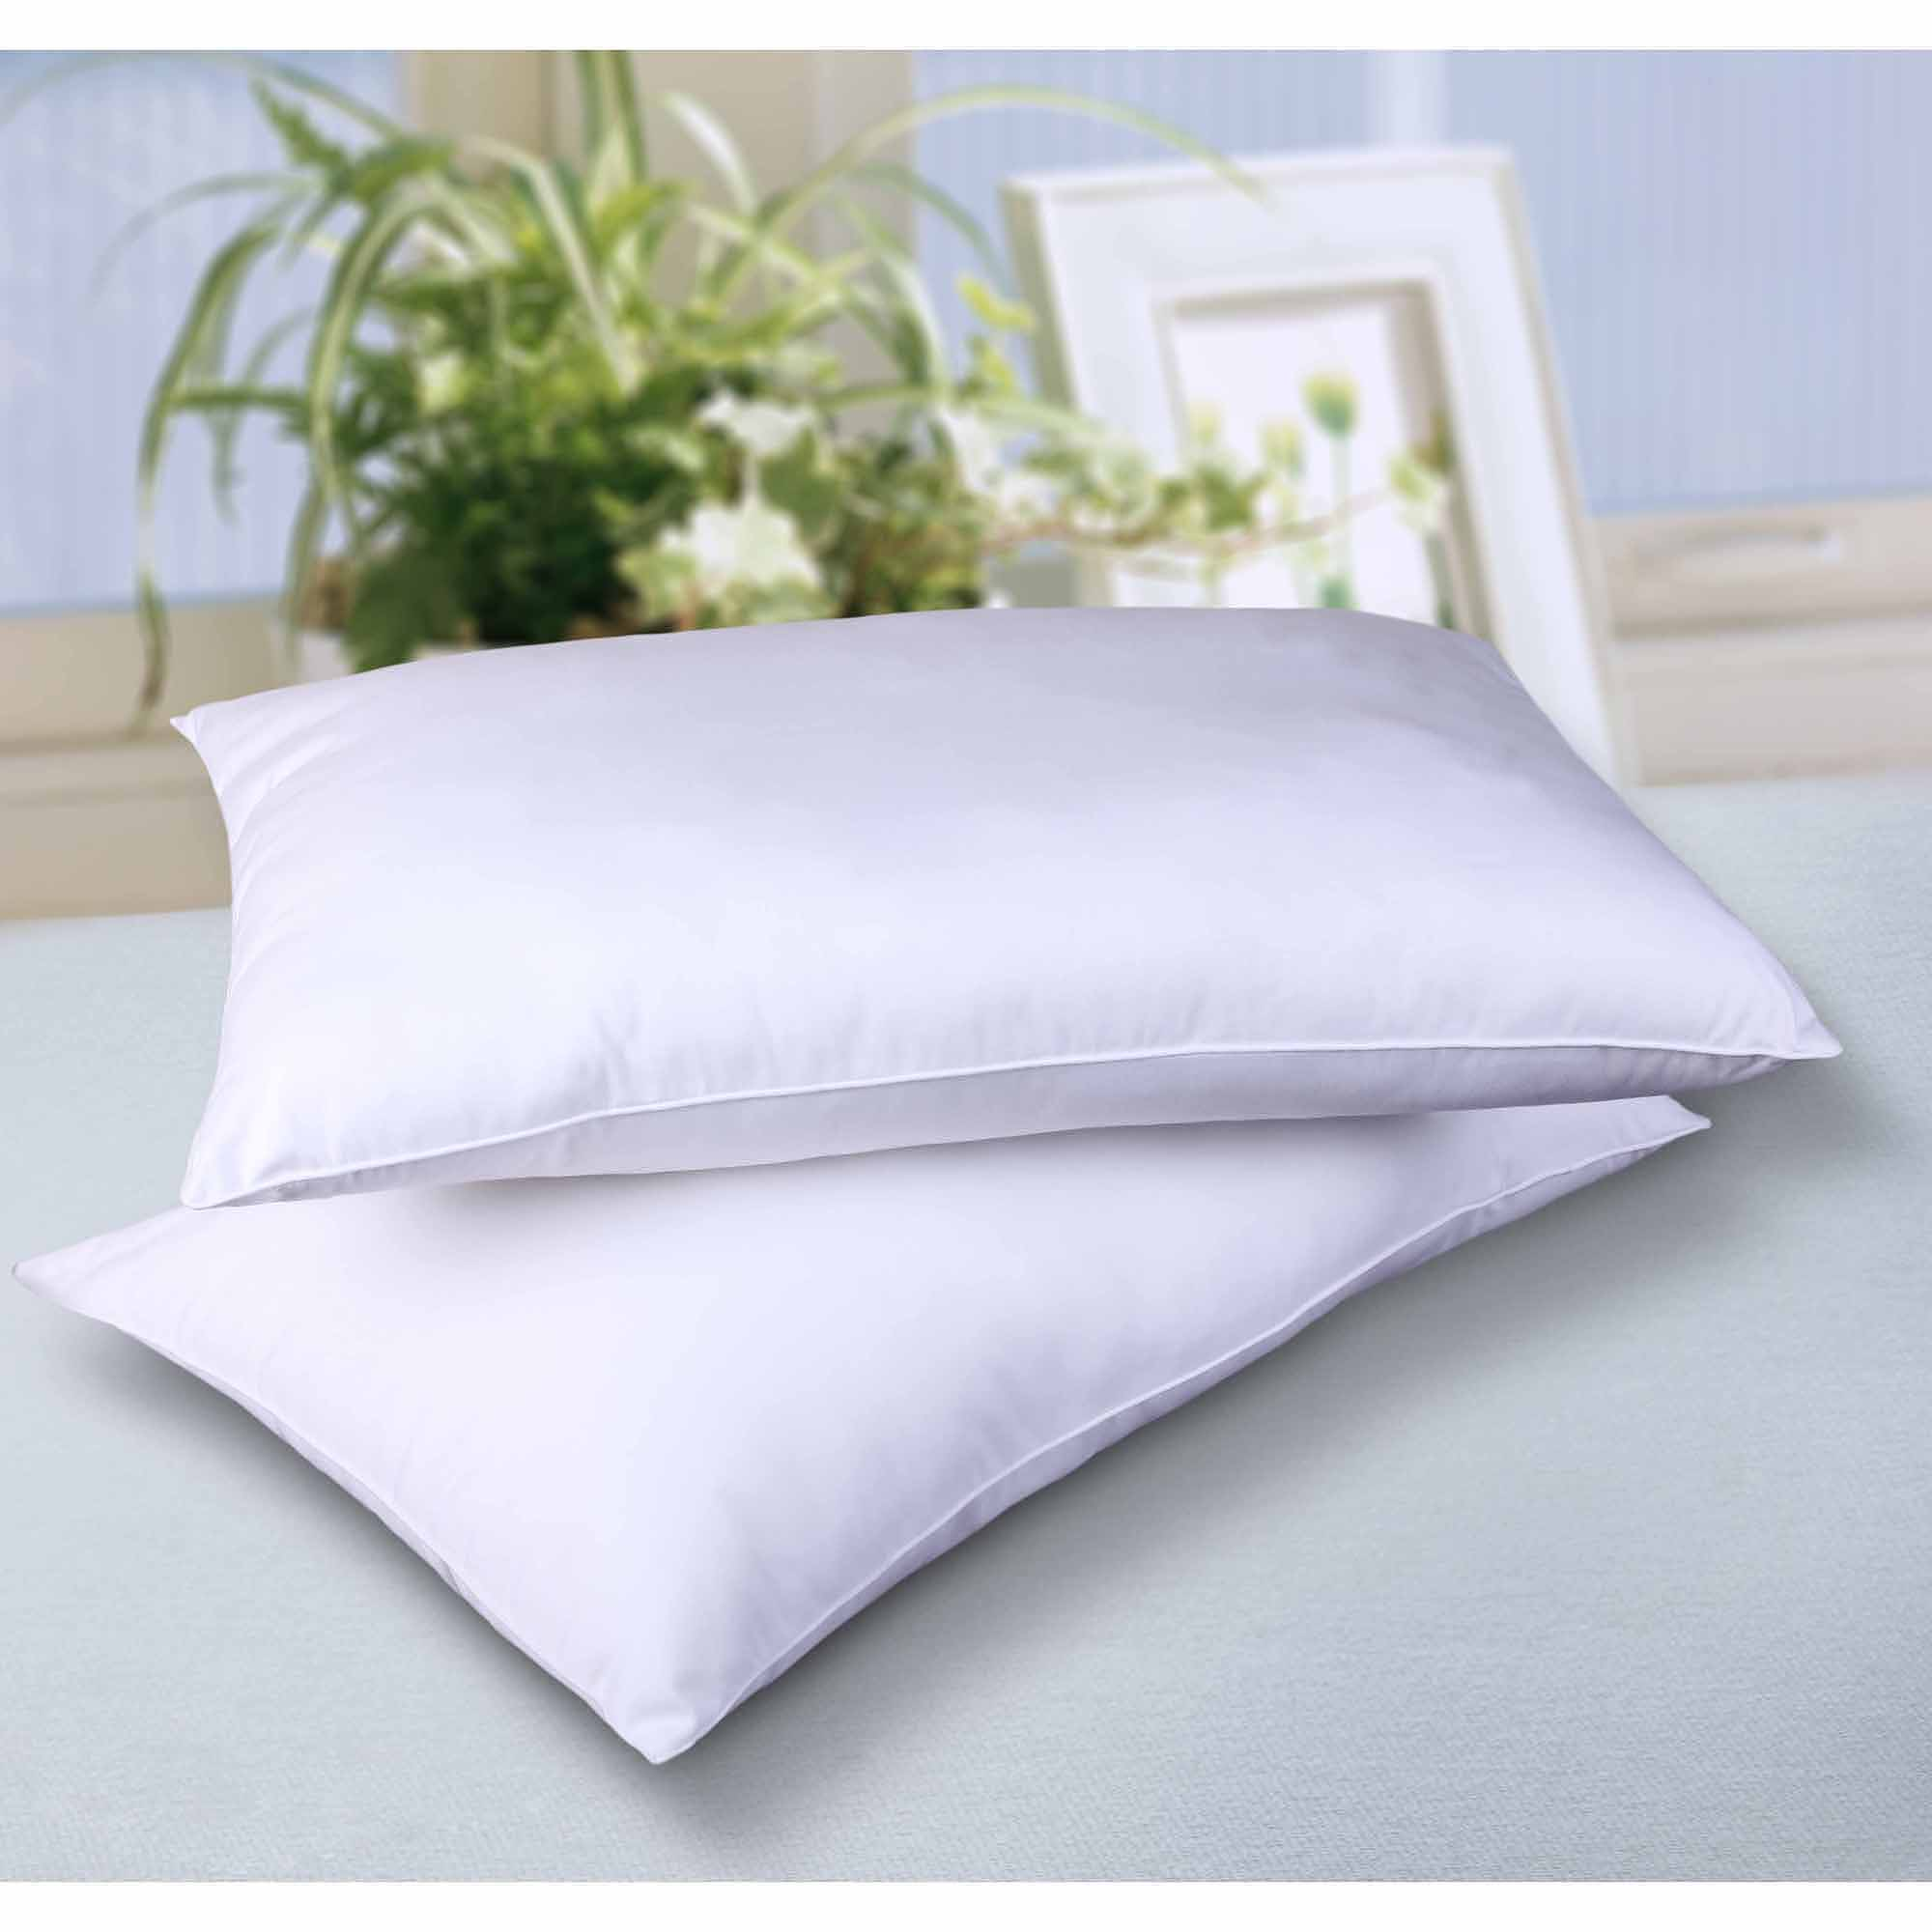 Standard Bed Pillows Cottonloft Self Cooling Cotton Filled Bed Pillow 2 Pack